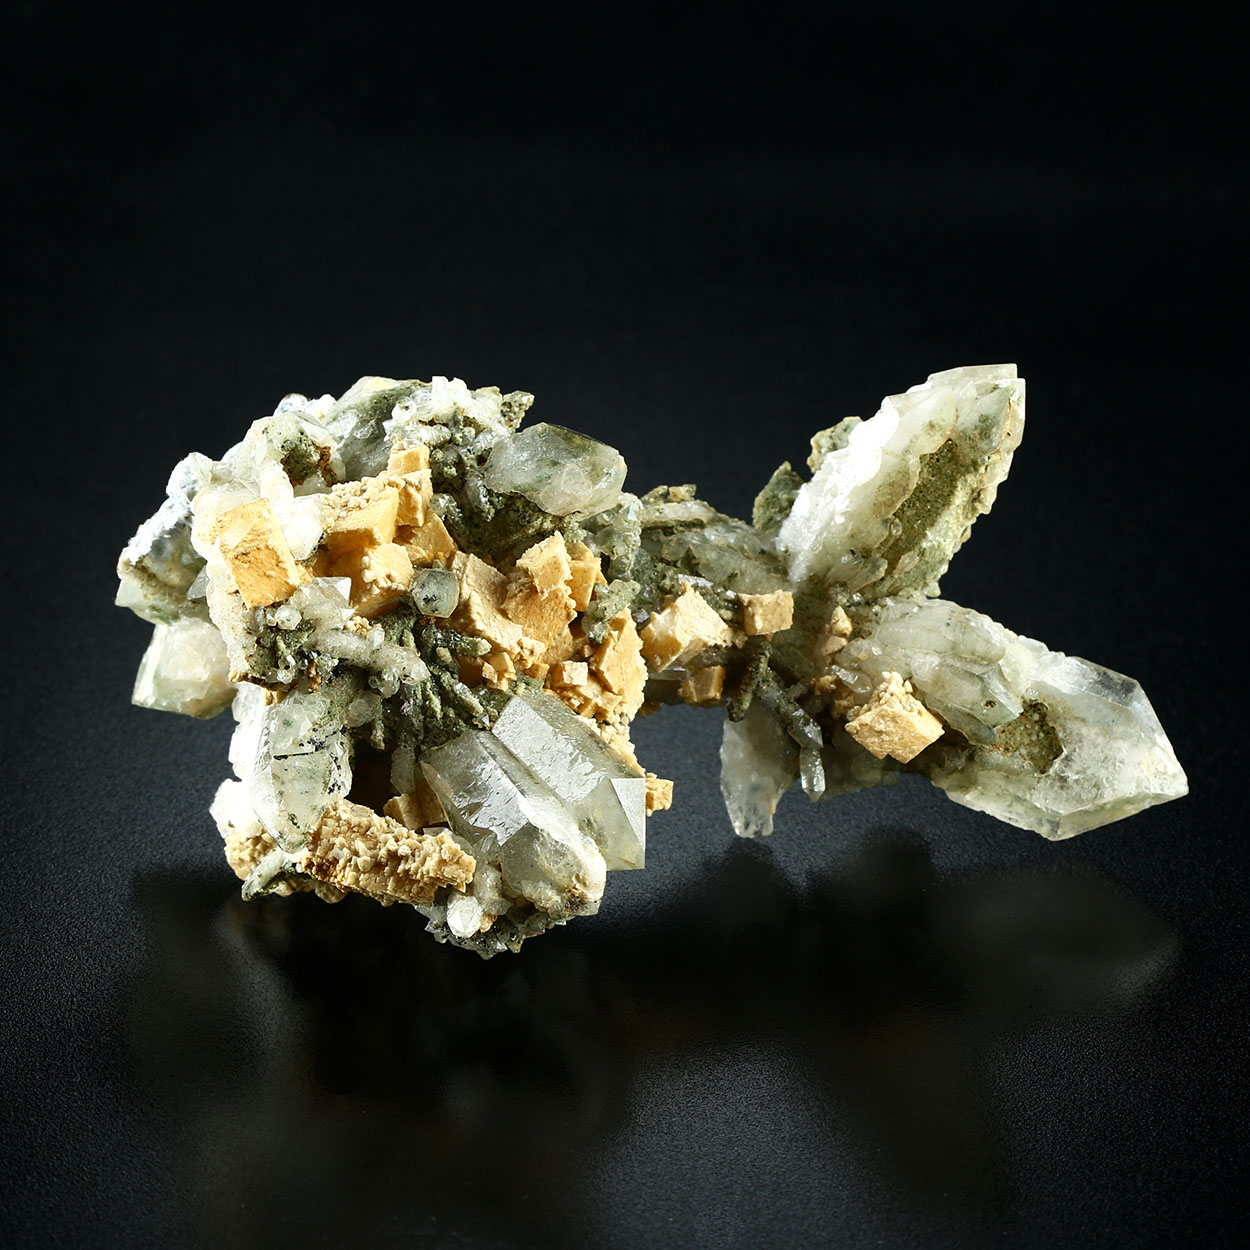 Quartz With Feldspar Group